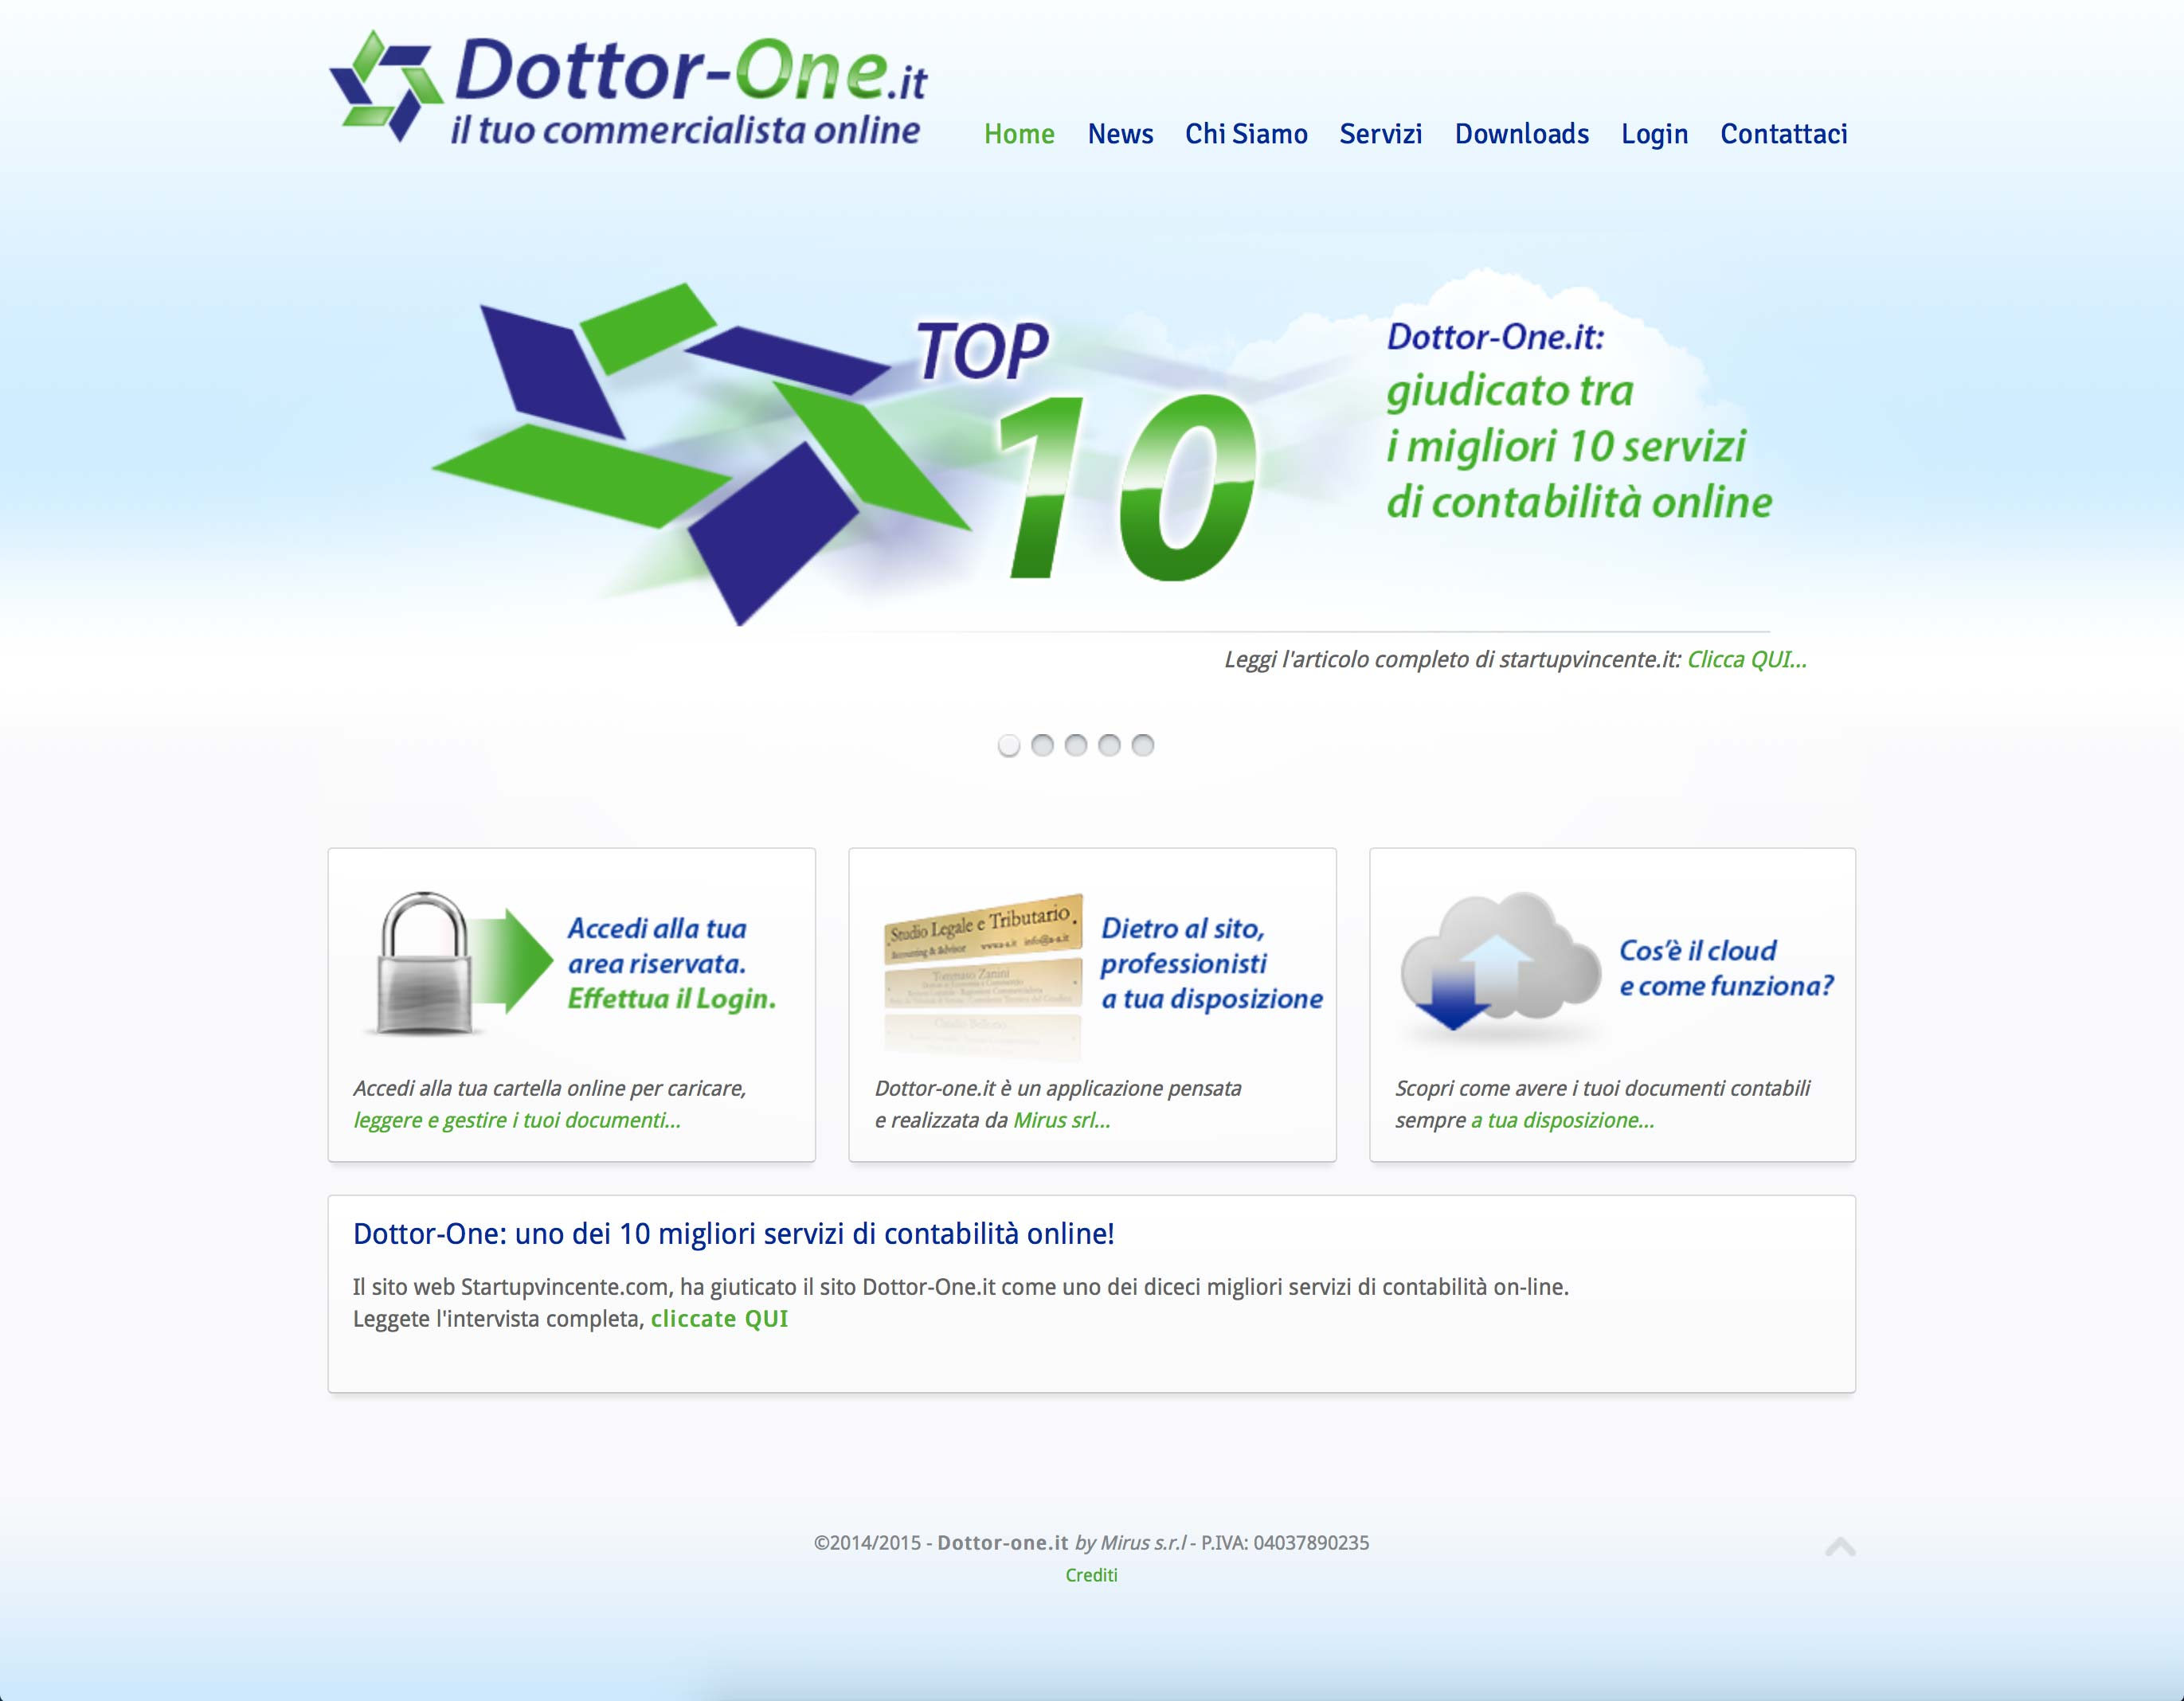 Dottor-one.it